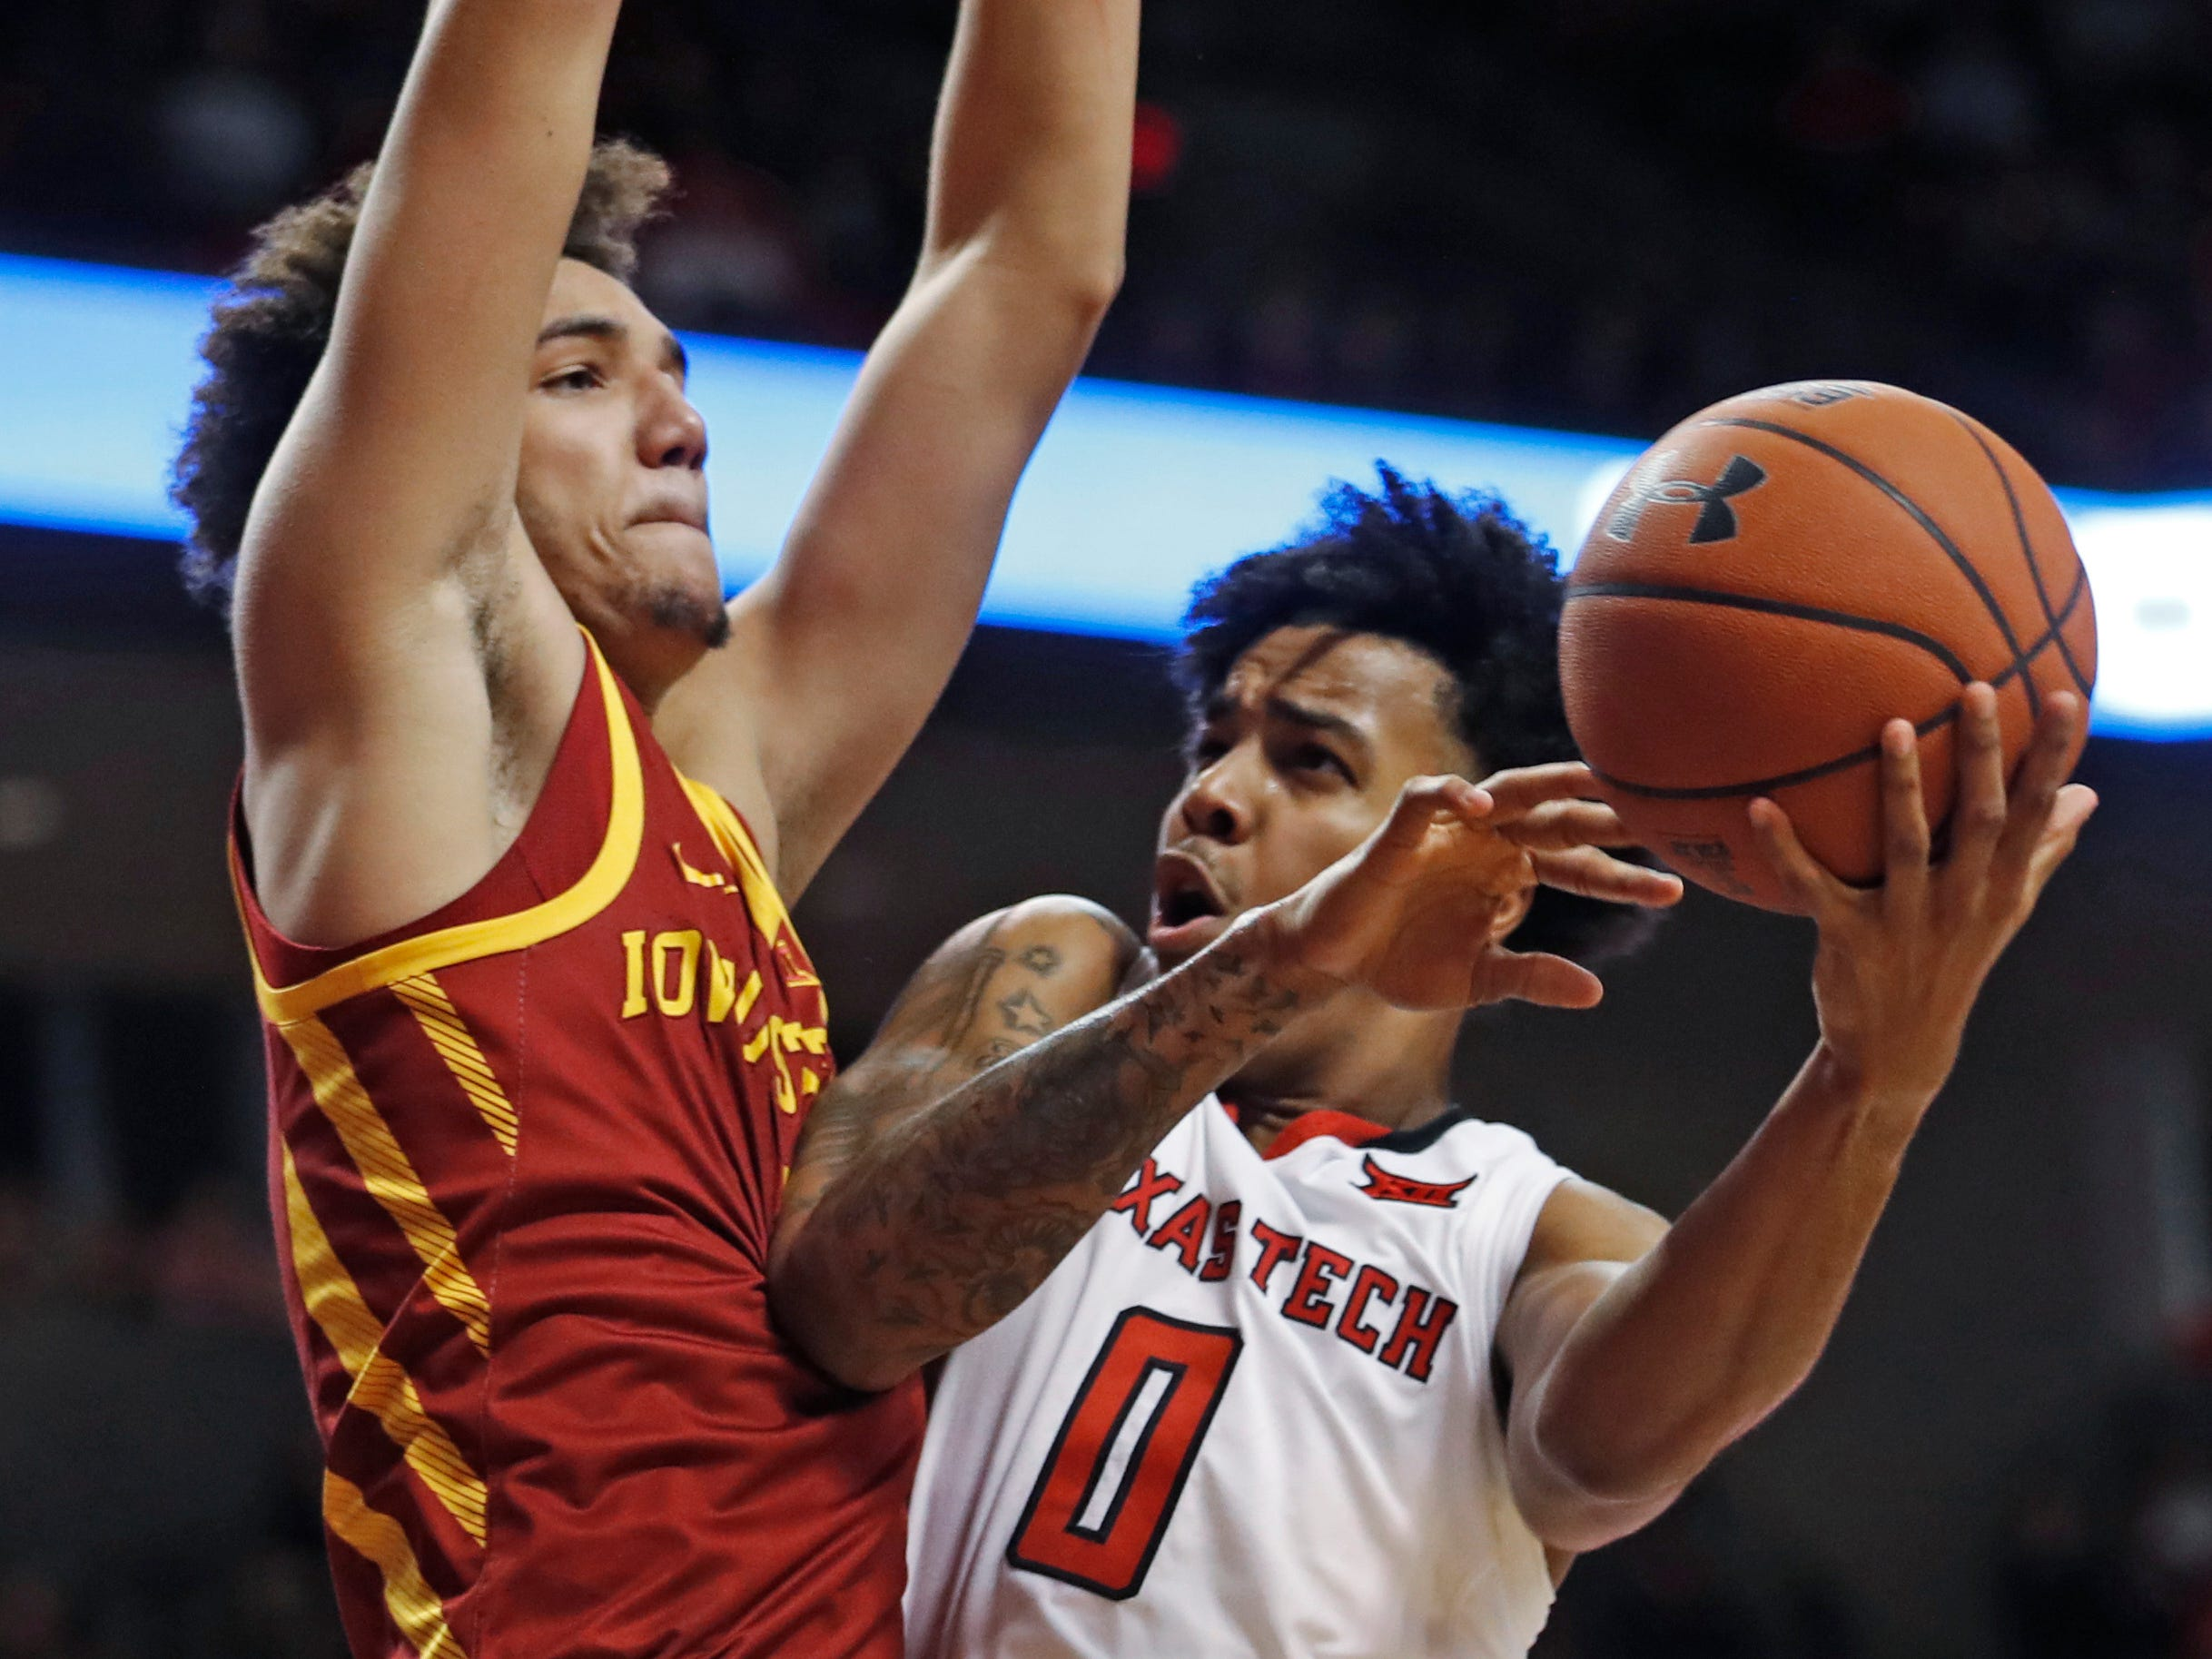 Texas Tech's Kyler Edwards (0) tries to shoot around Iowa State's George Conditt IV during the second half of an NCAA college basketball game Wednesday, Jan. 16, 2019, in Lubbock, Texas.